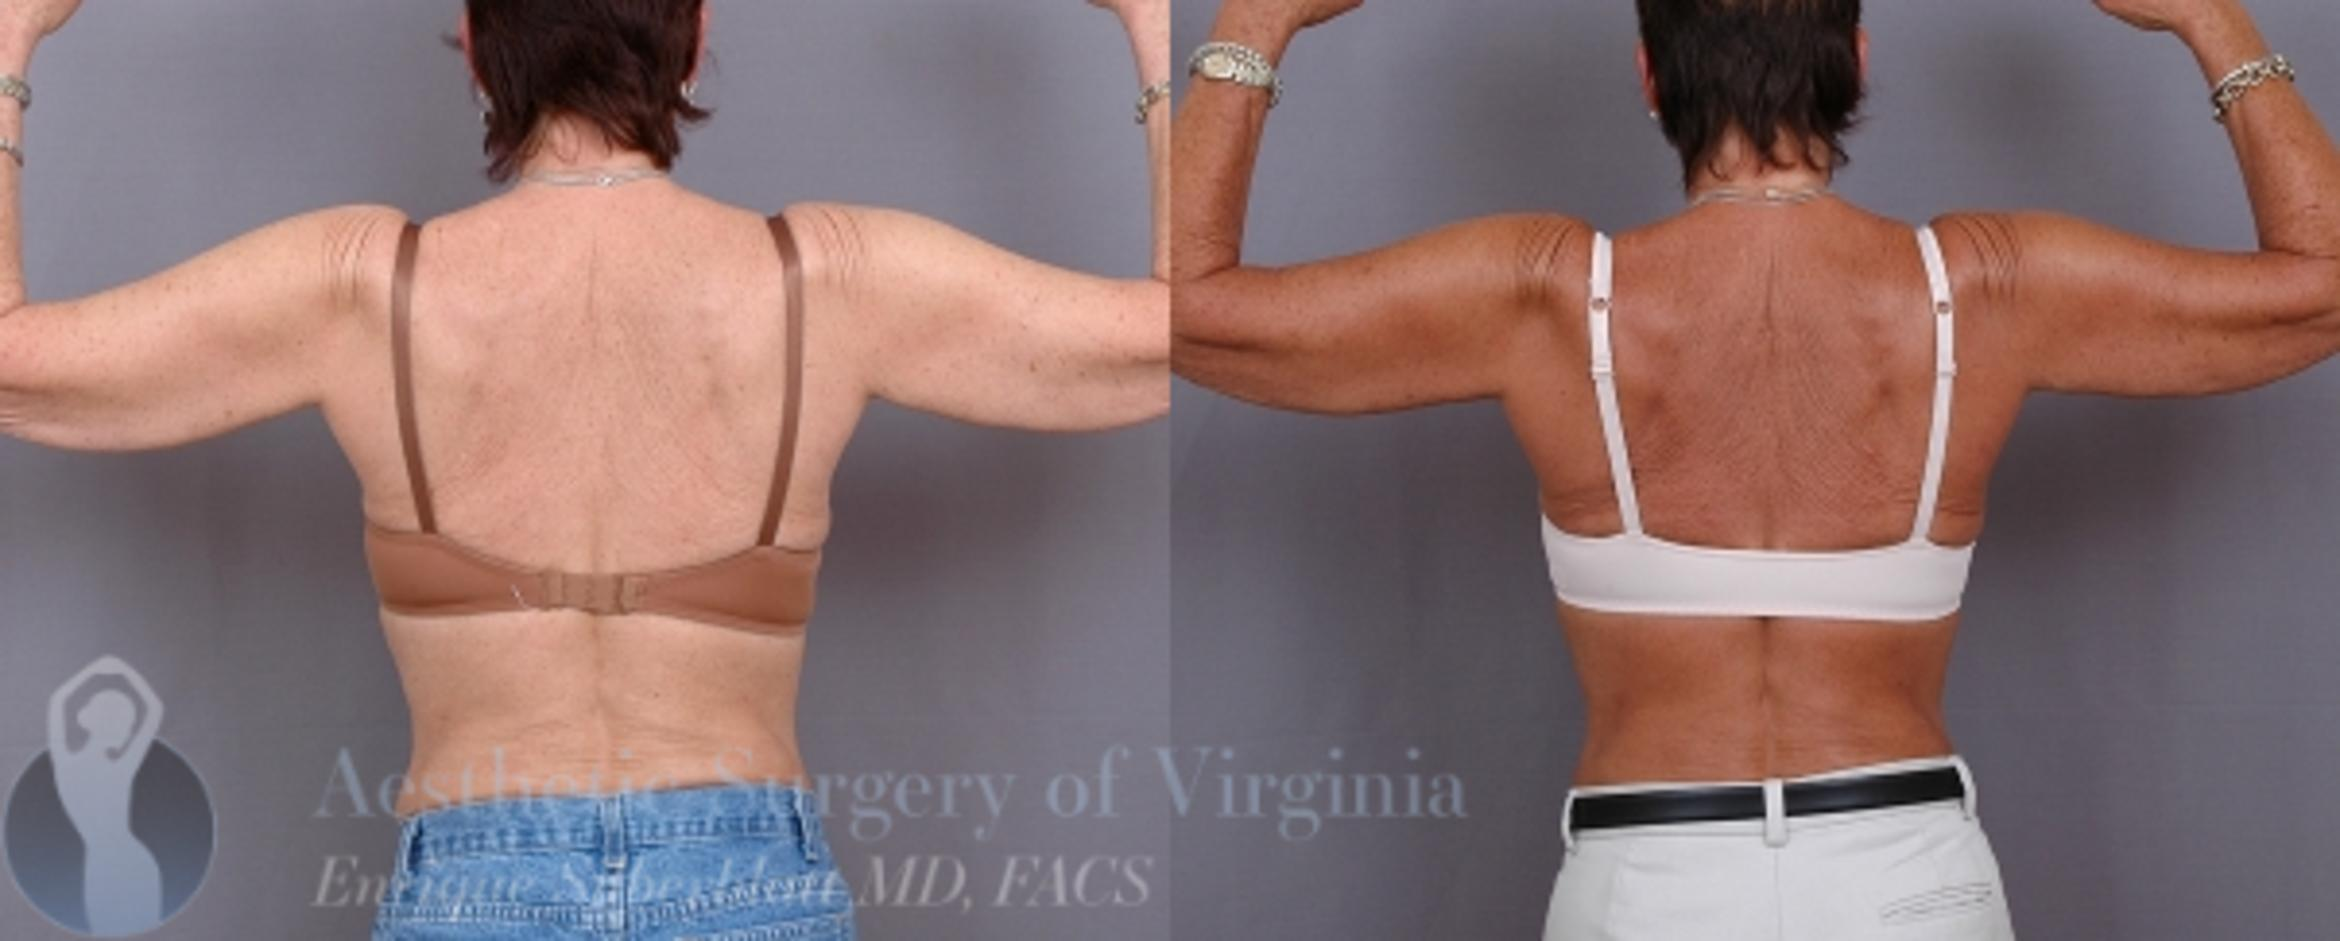 Arm Lift Surgery Case 32 Before & After View #3 | Roanoke, VA | Aesthetic Surgery of Virginia: Enrique Silberblatt, MD